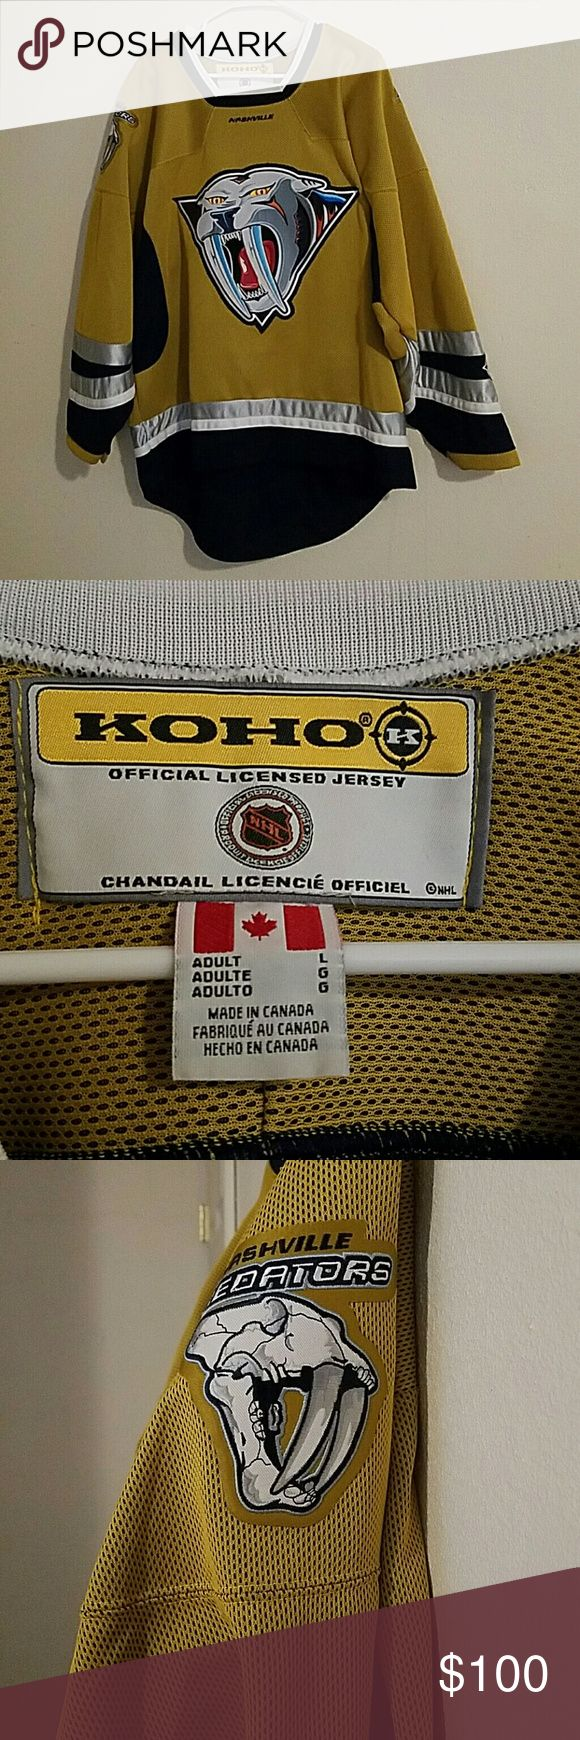 Koho Nashville Predators Jersey Jersey is in great condition with no tears or holes, it does have a small stain on left sleeve (pictured)it has seen 1 Predators game that's it, it has never been launder so stitching and patches are pristine. Size L Koho Tops Sweatshirts & Hoodies